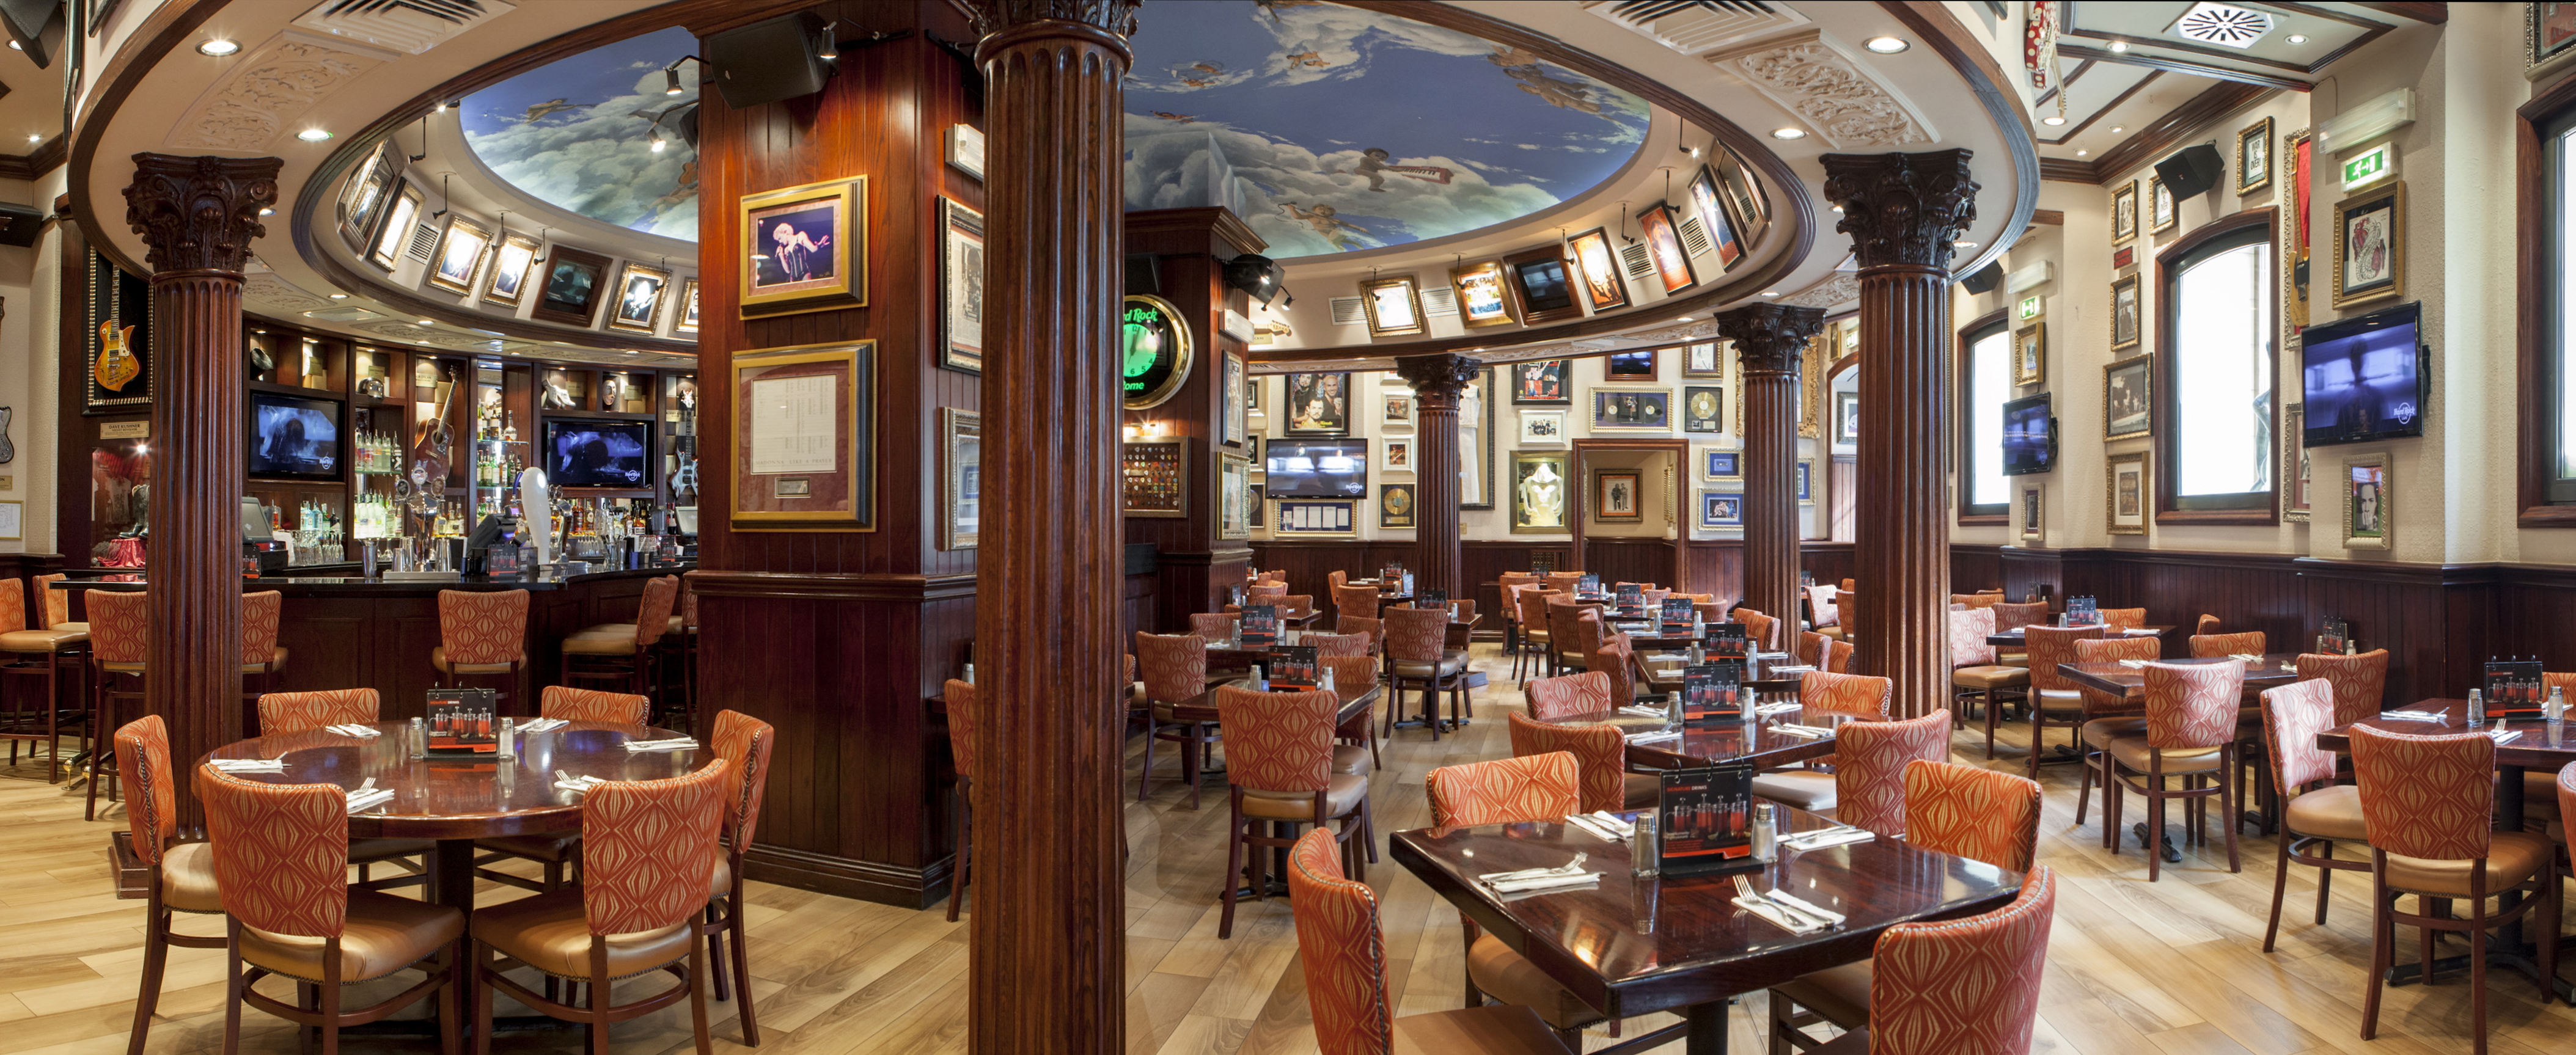 Hard rock cafe roma un 39 esperienza culturale unica e for Restaurants for big groups